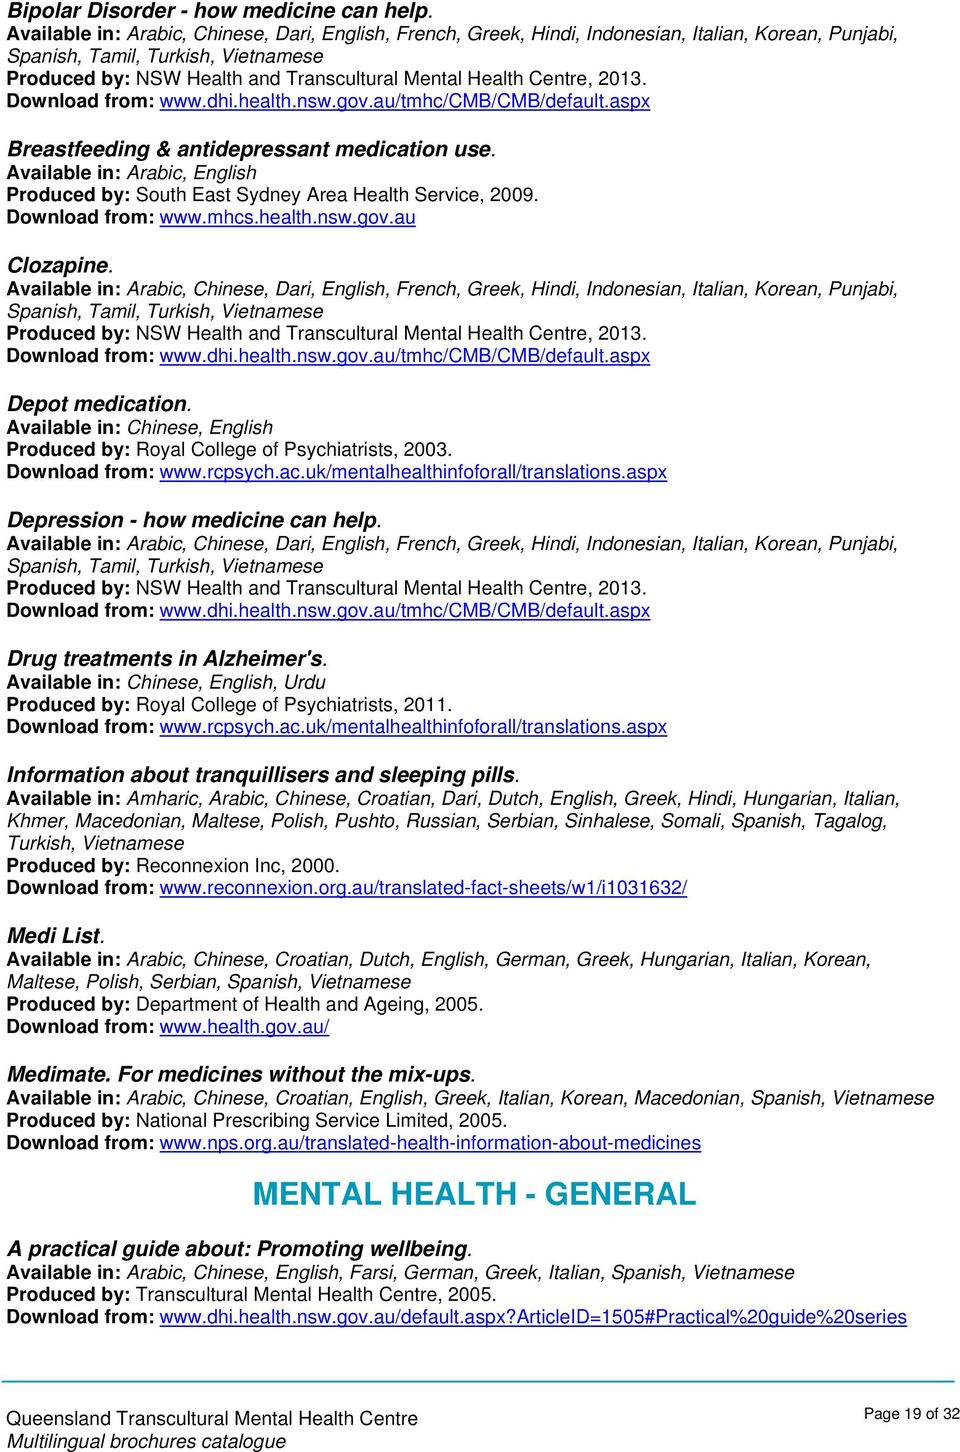 Download from: www.dhi.health.nsw.gov.au/tmhc/cmb/cmb/default.aspx Breastfeeding & antidepressant medication use. Produced by: South East Sydney Area Health Service, 2009. Clozapine.